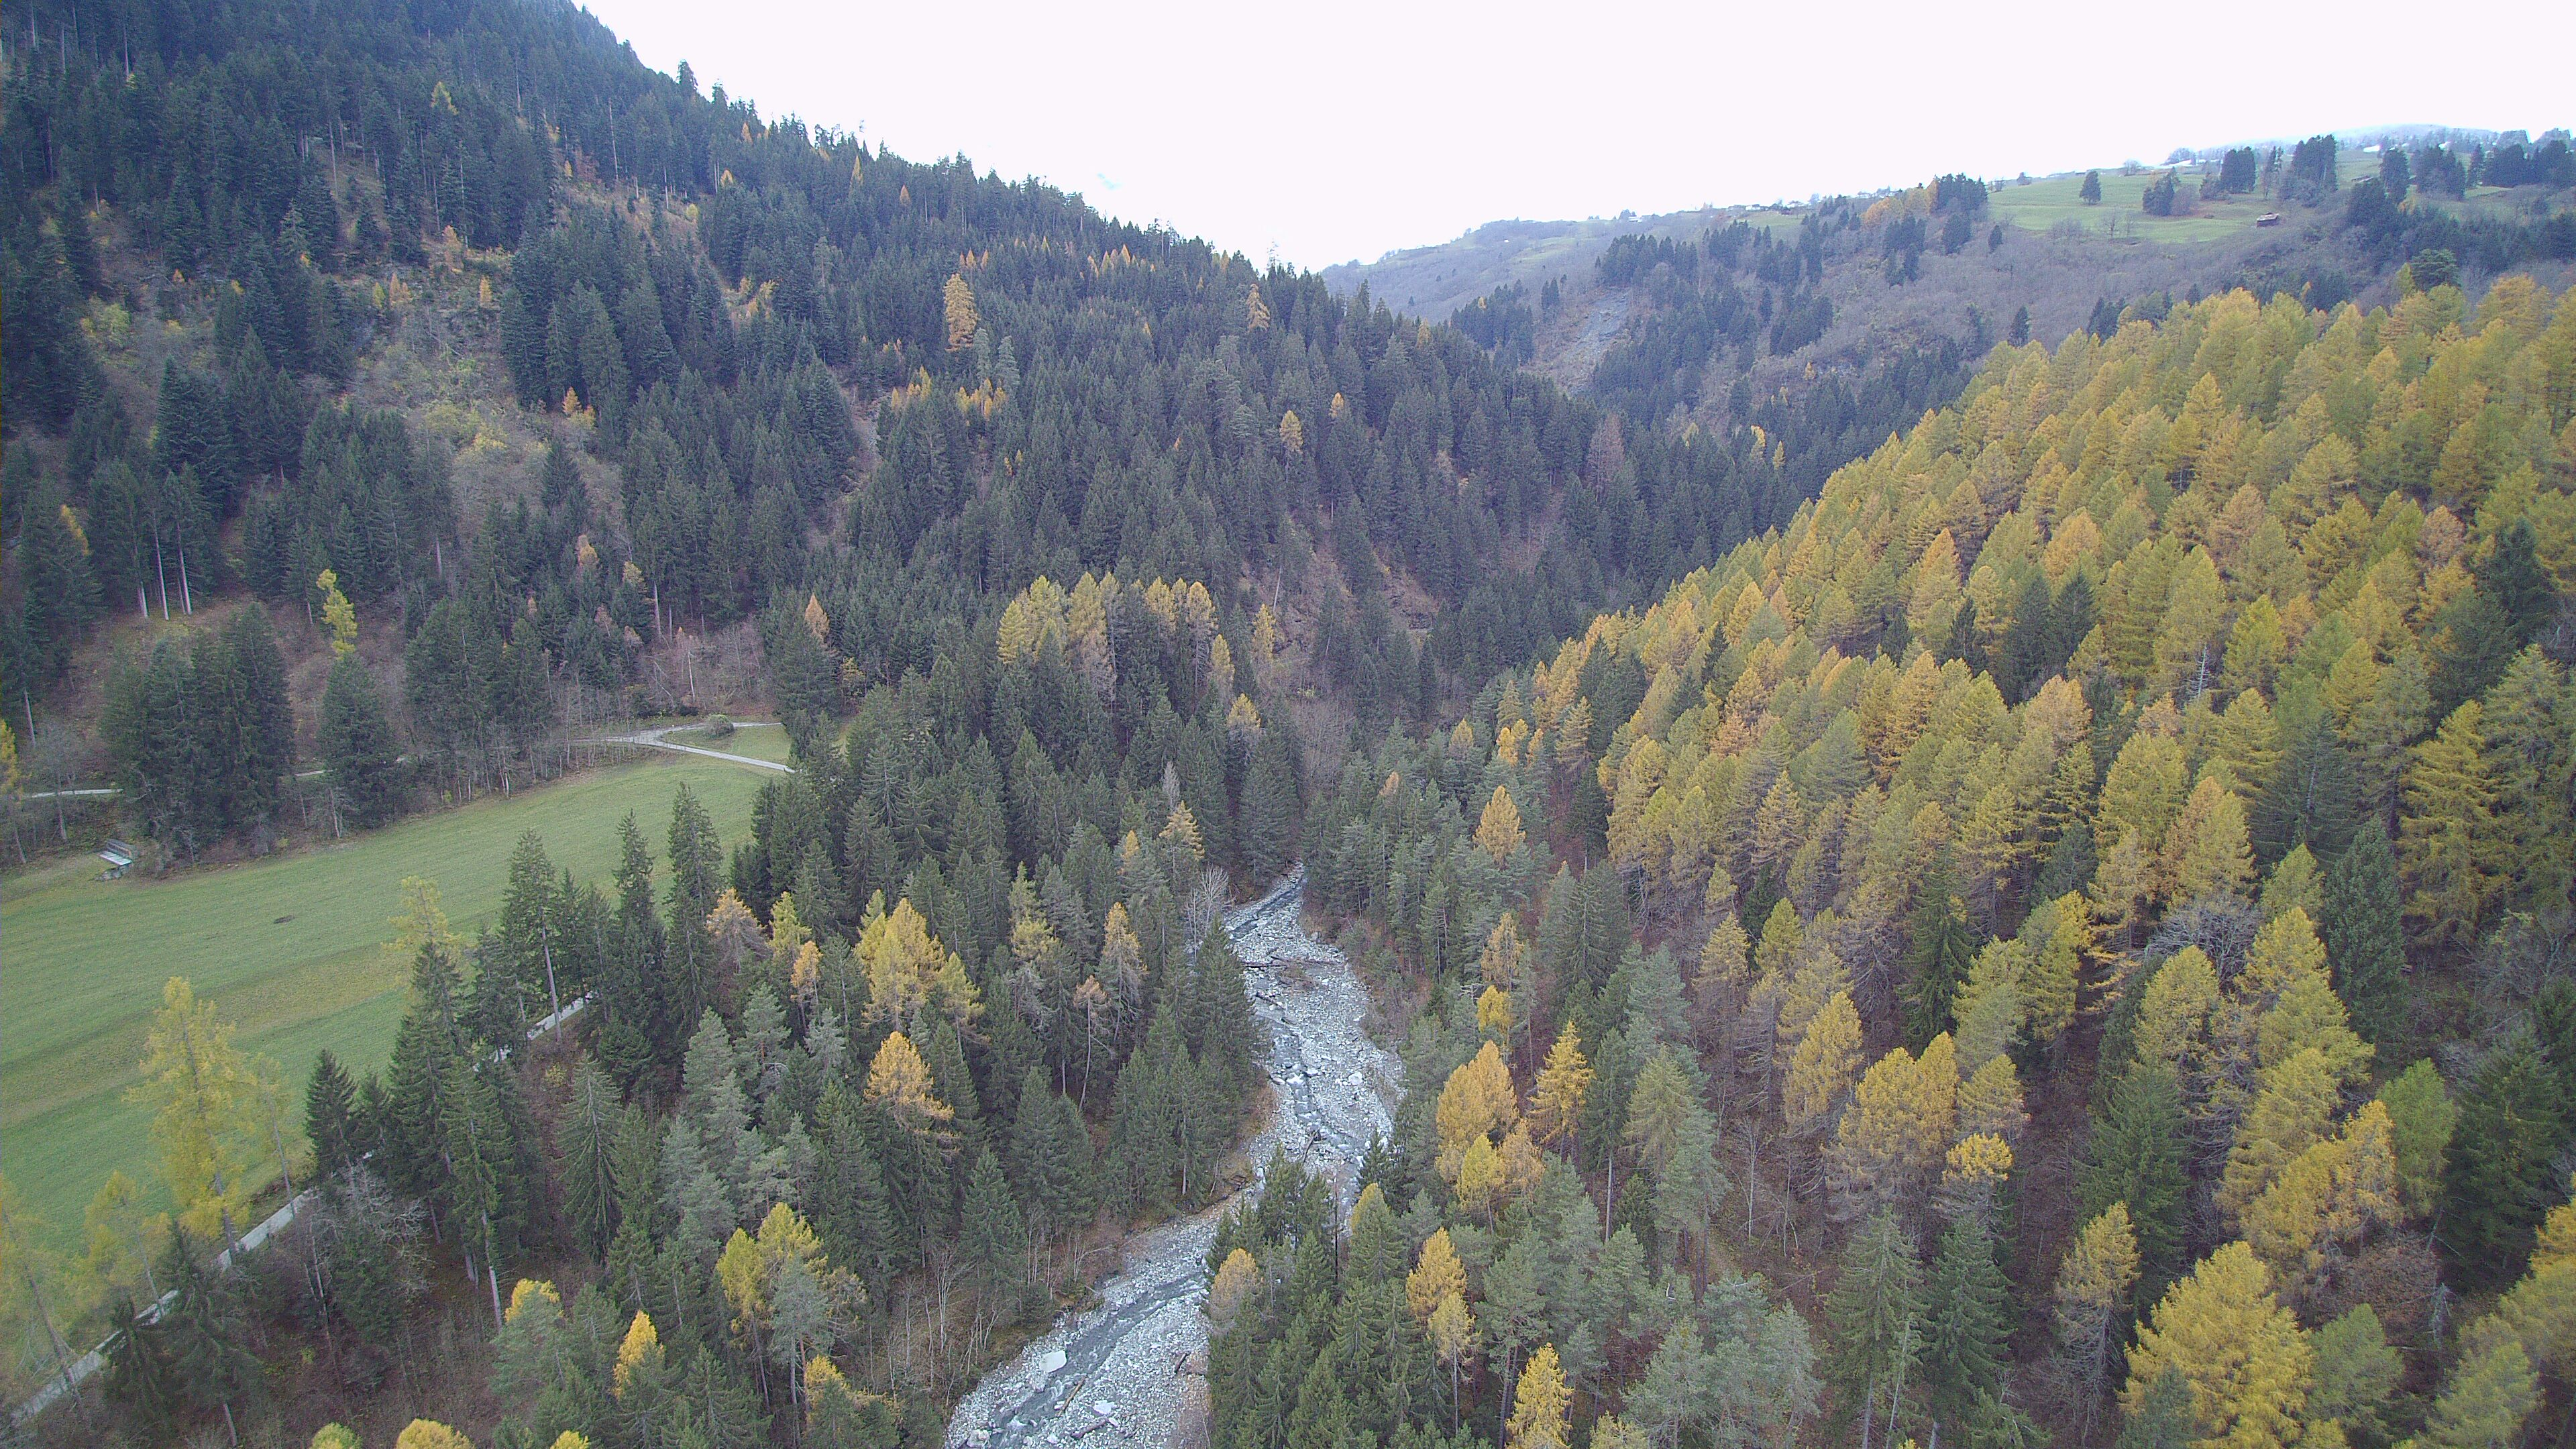 The forests of the Albula Valley